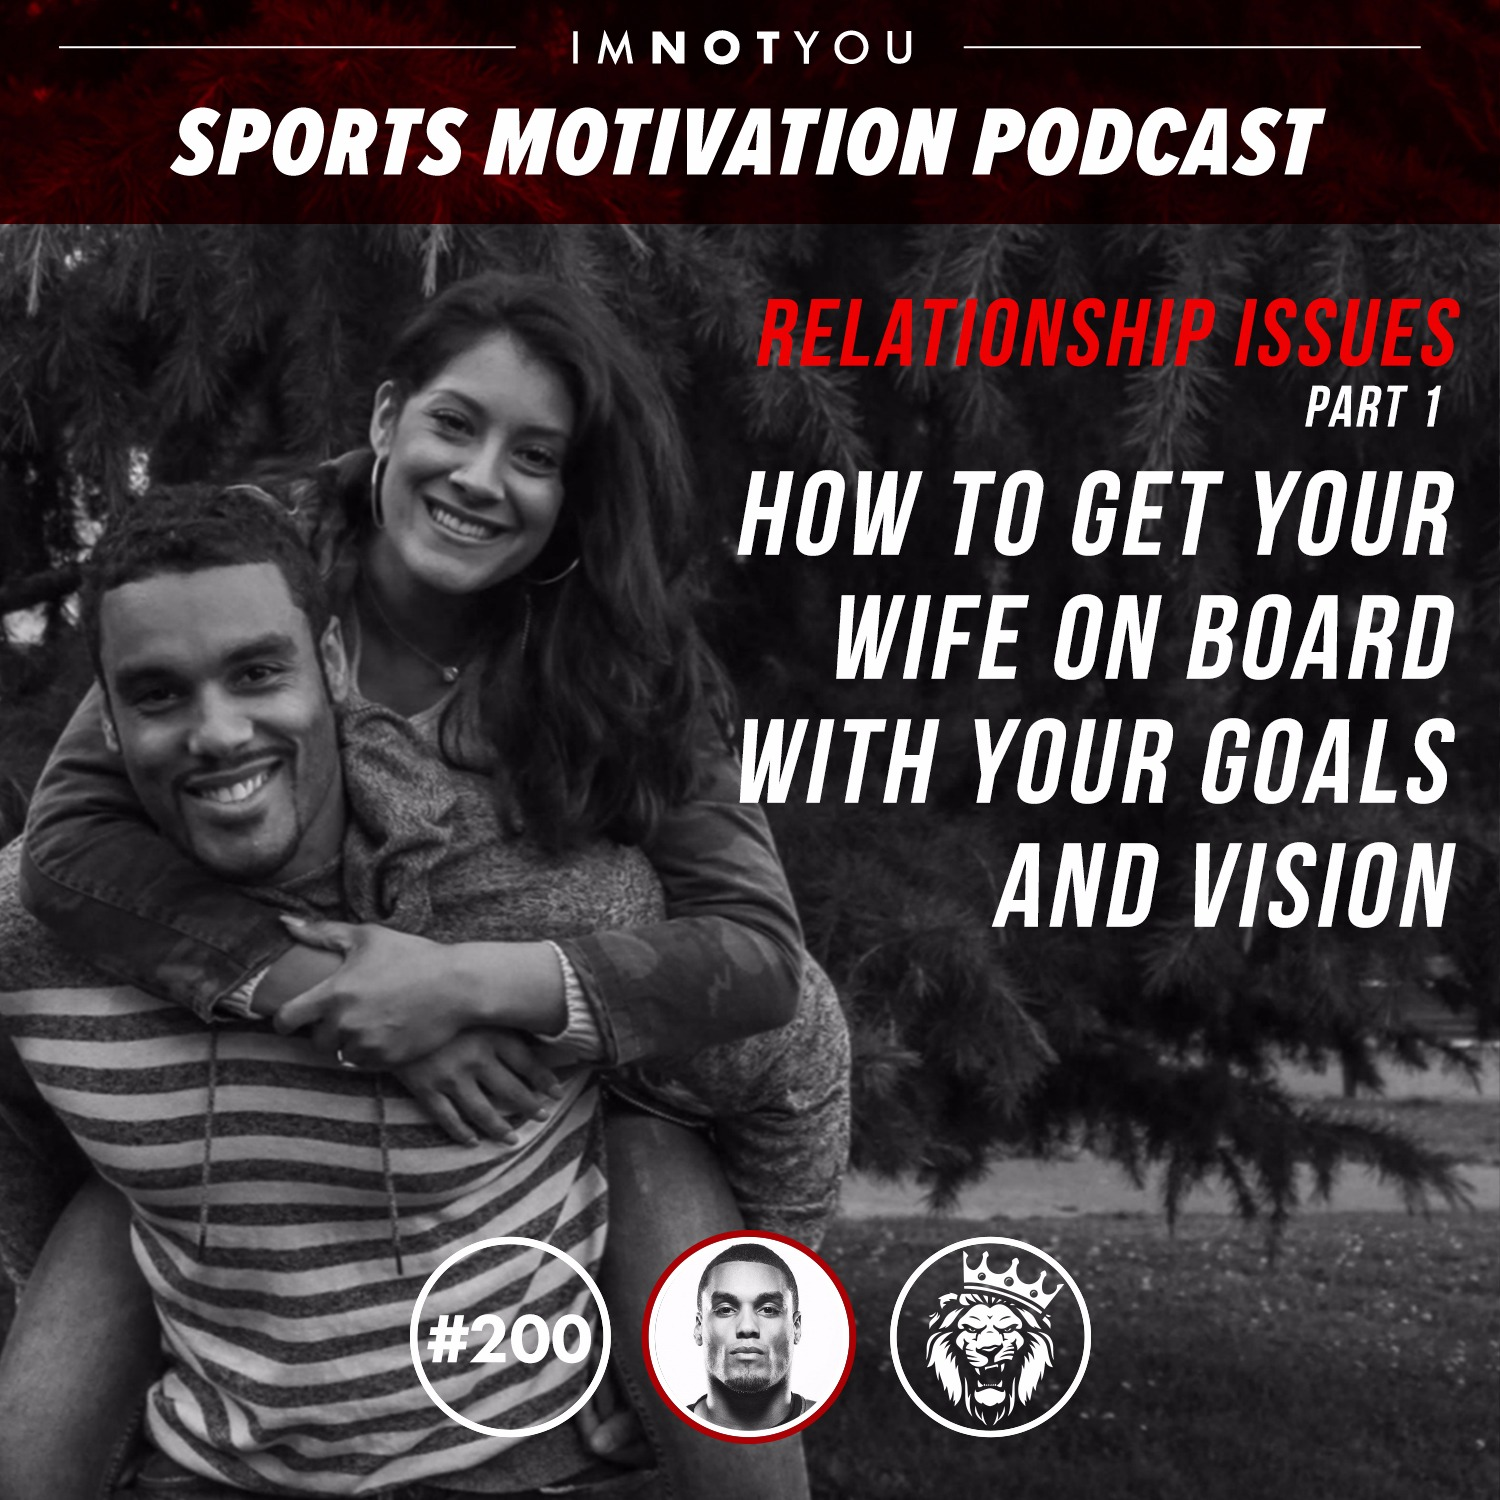 200: Relationship Issues, Part 1: How to get your wife on board with your goals and vision